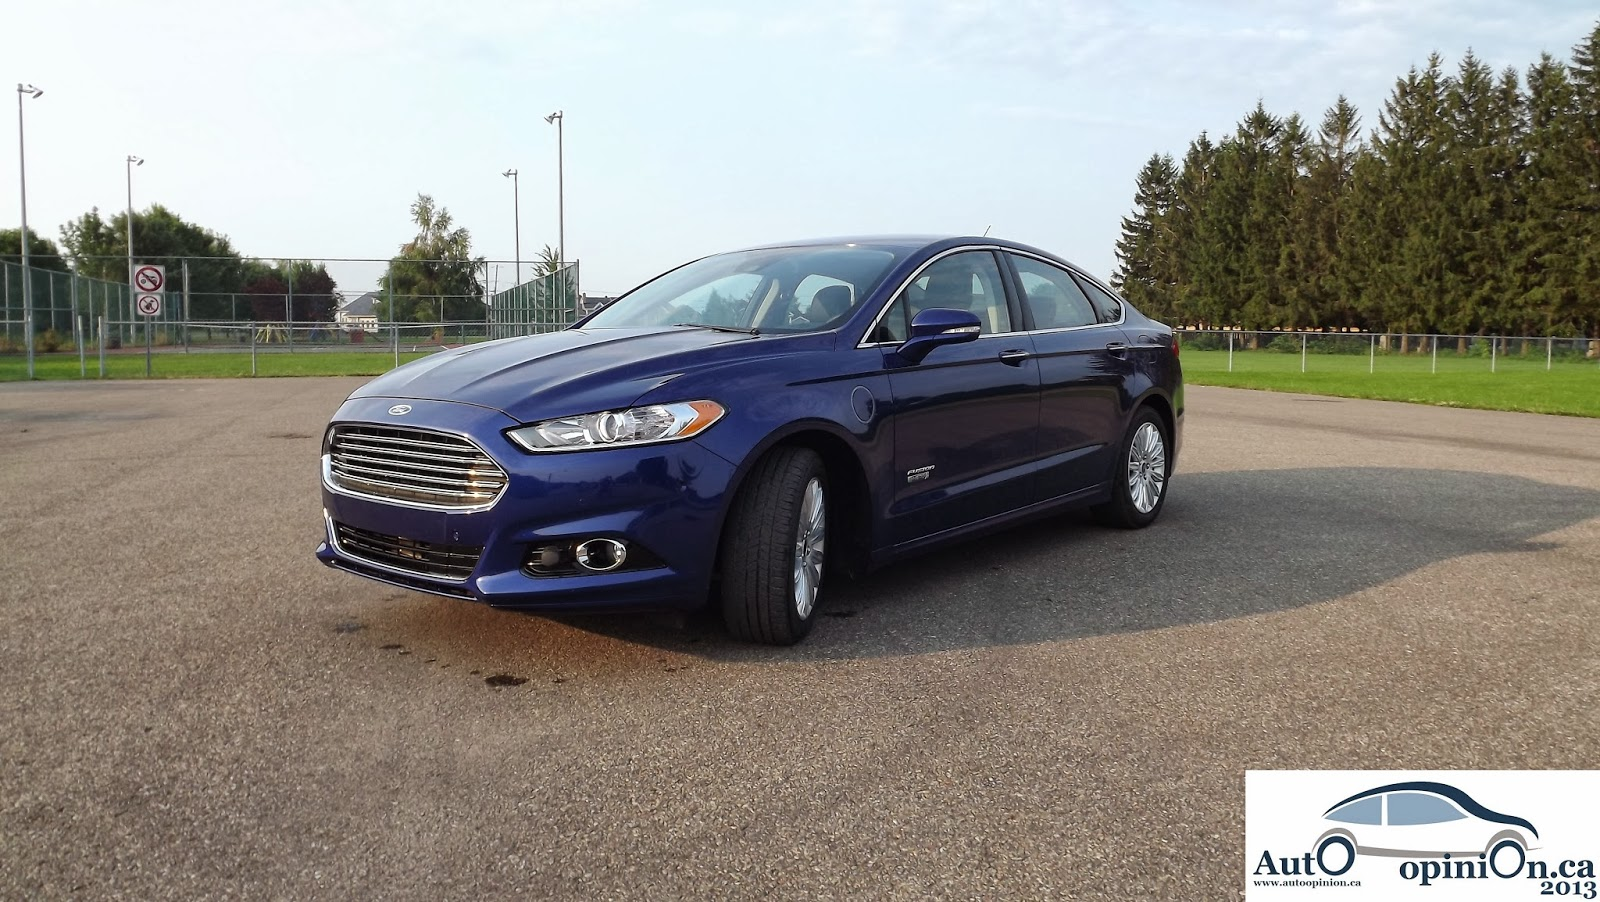 2014 ford fusion value fuel economy up to 41mpg city html autos weblog. Black Bedroom Furniture Sets. Home Design Ideas